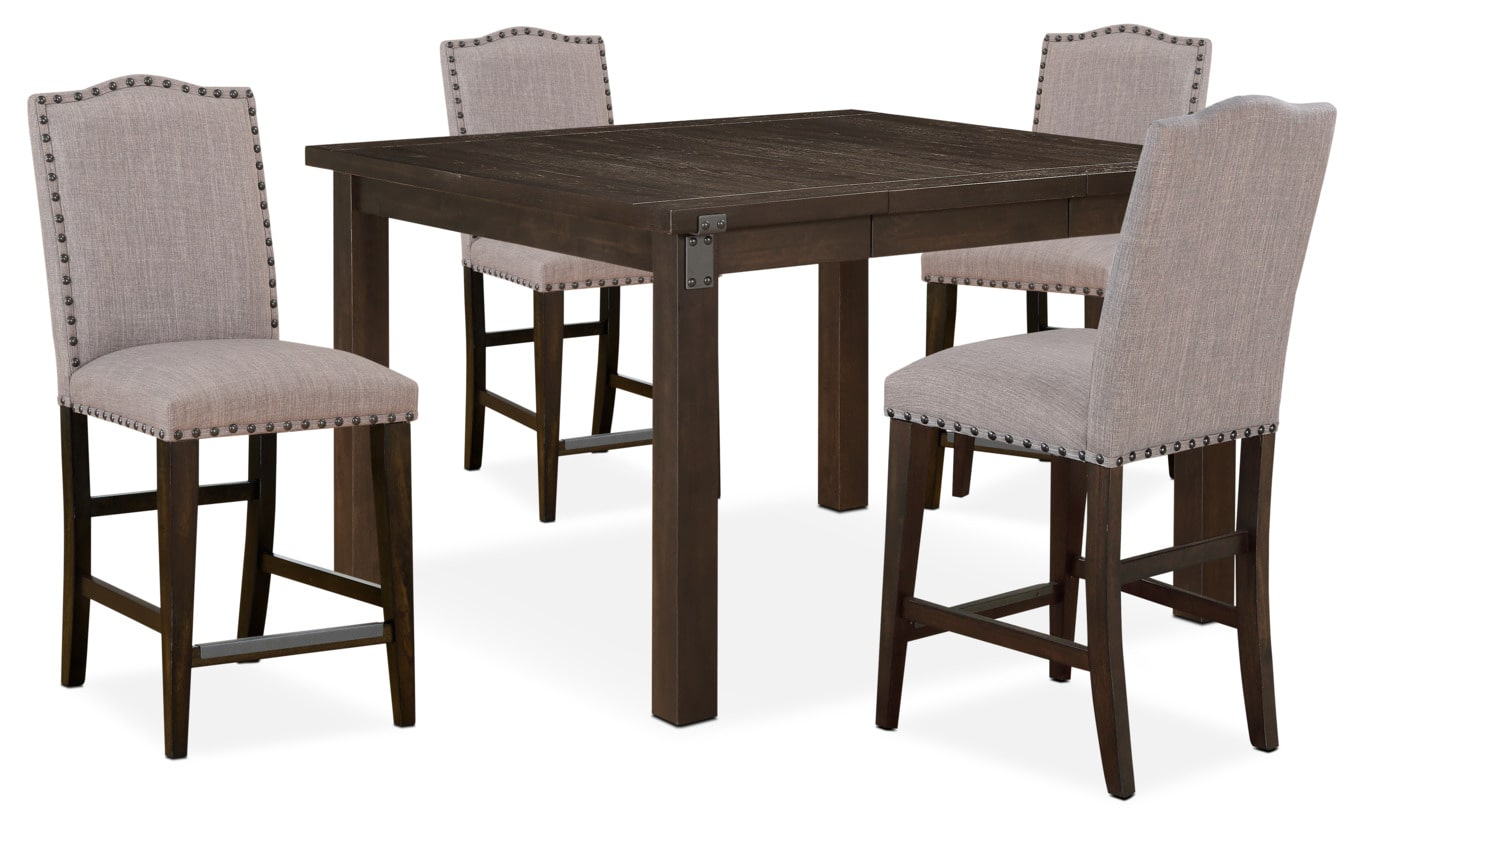 Dining Room Furniture - Hampton Counter-Height Dining Table and 4 Upholstered Stools